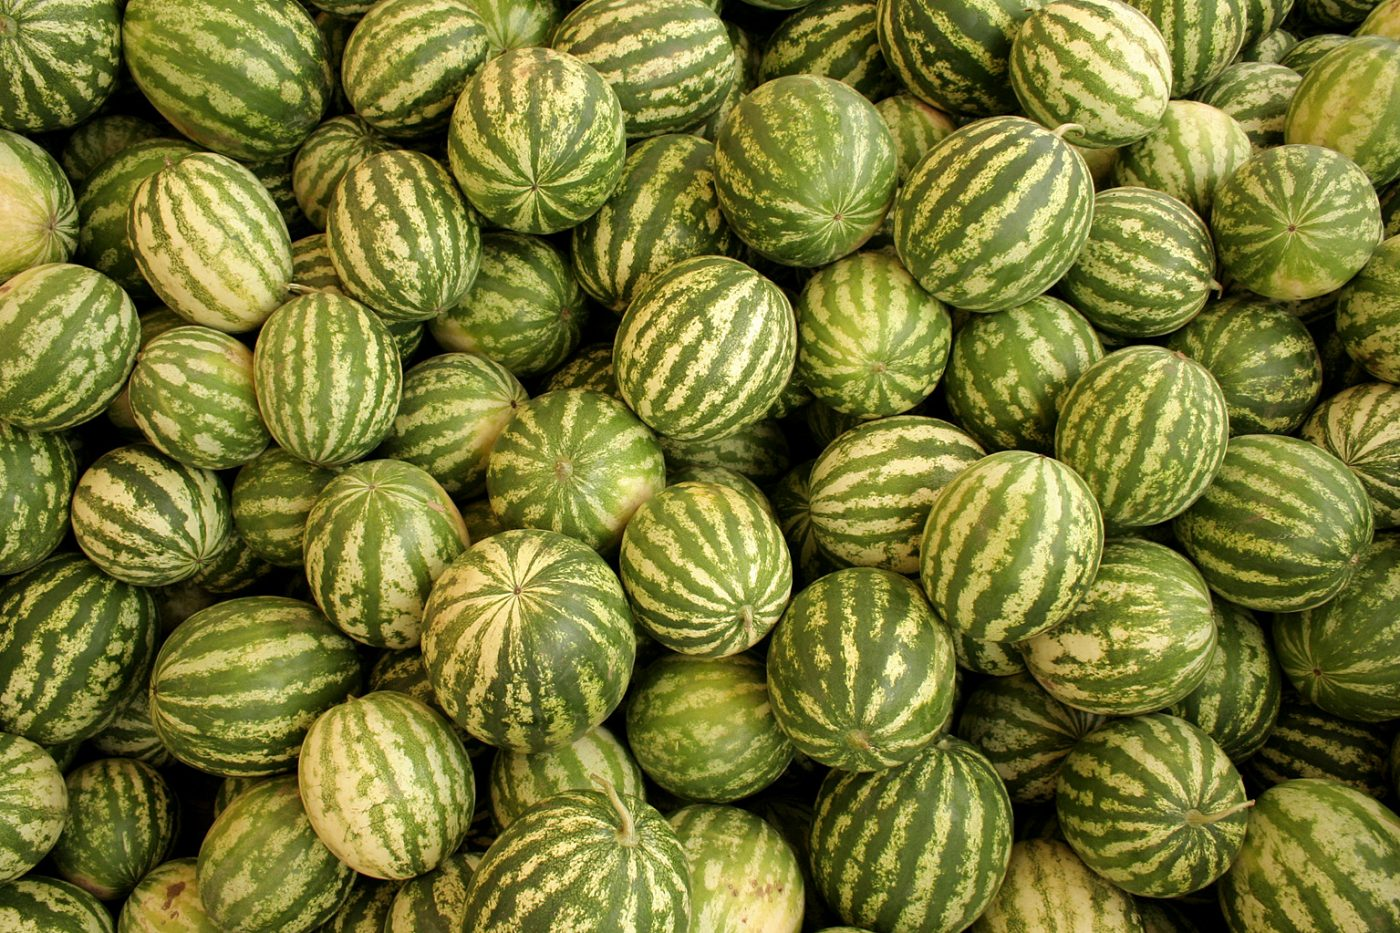 watermelons-watermelons-1621580-freeimages-by-mateusz-atroszko